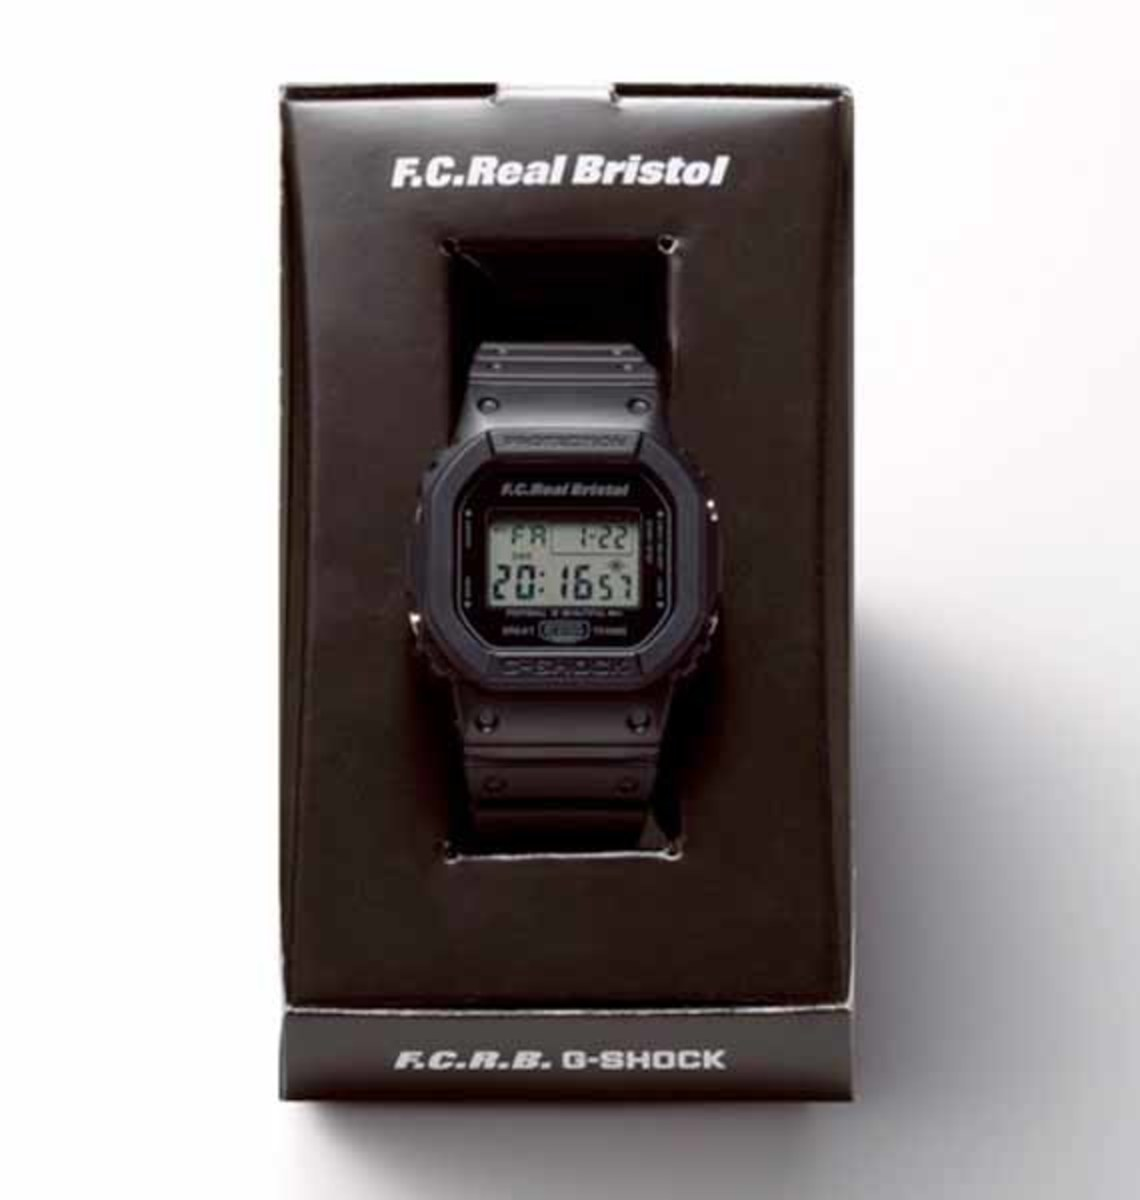 fcrb-casio-gshock-watch-2